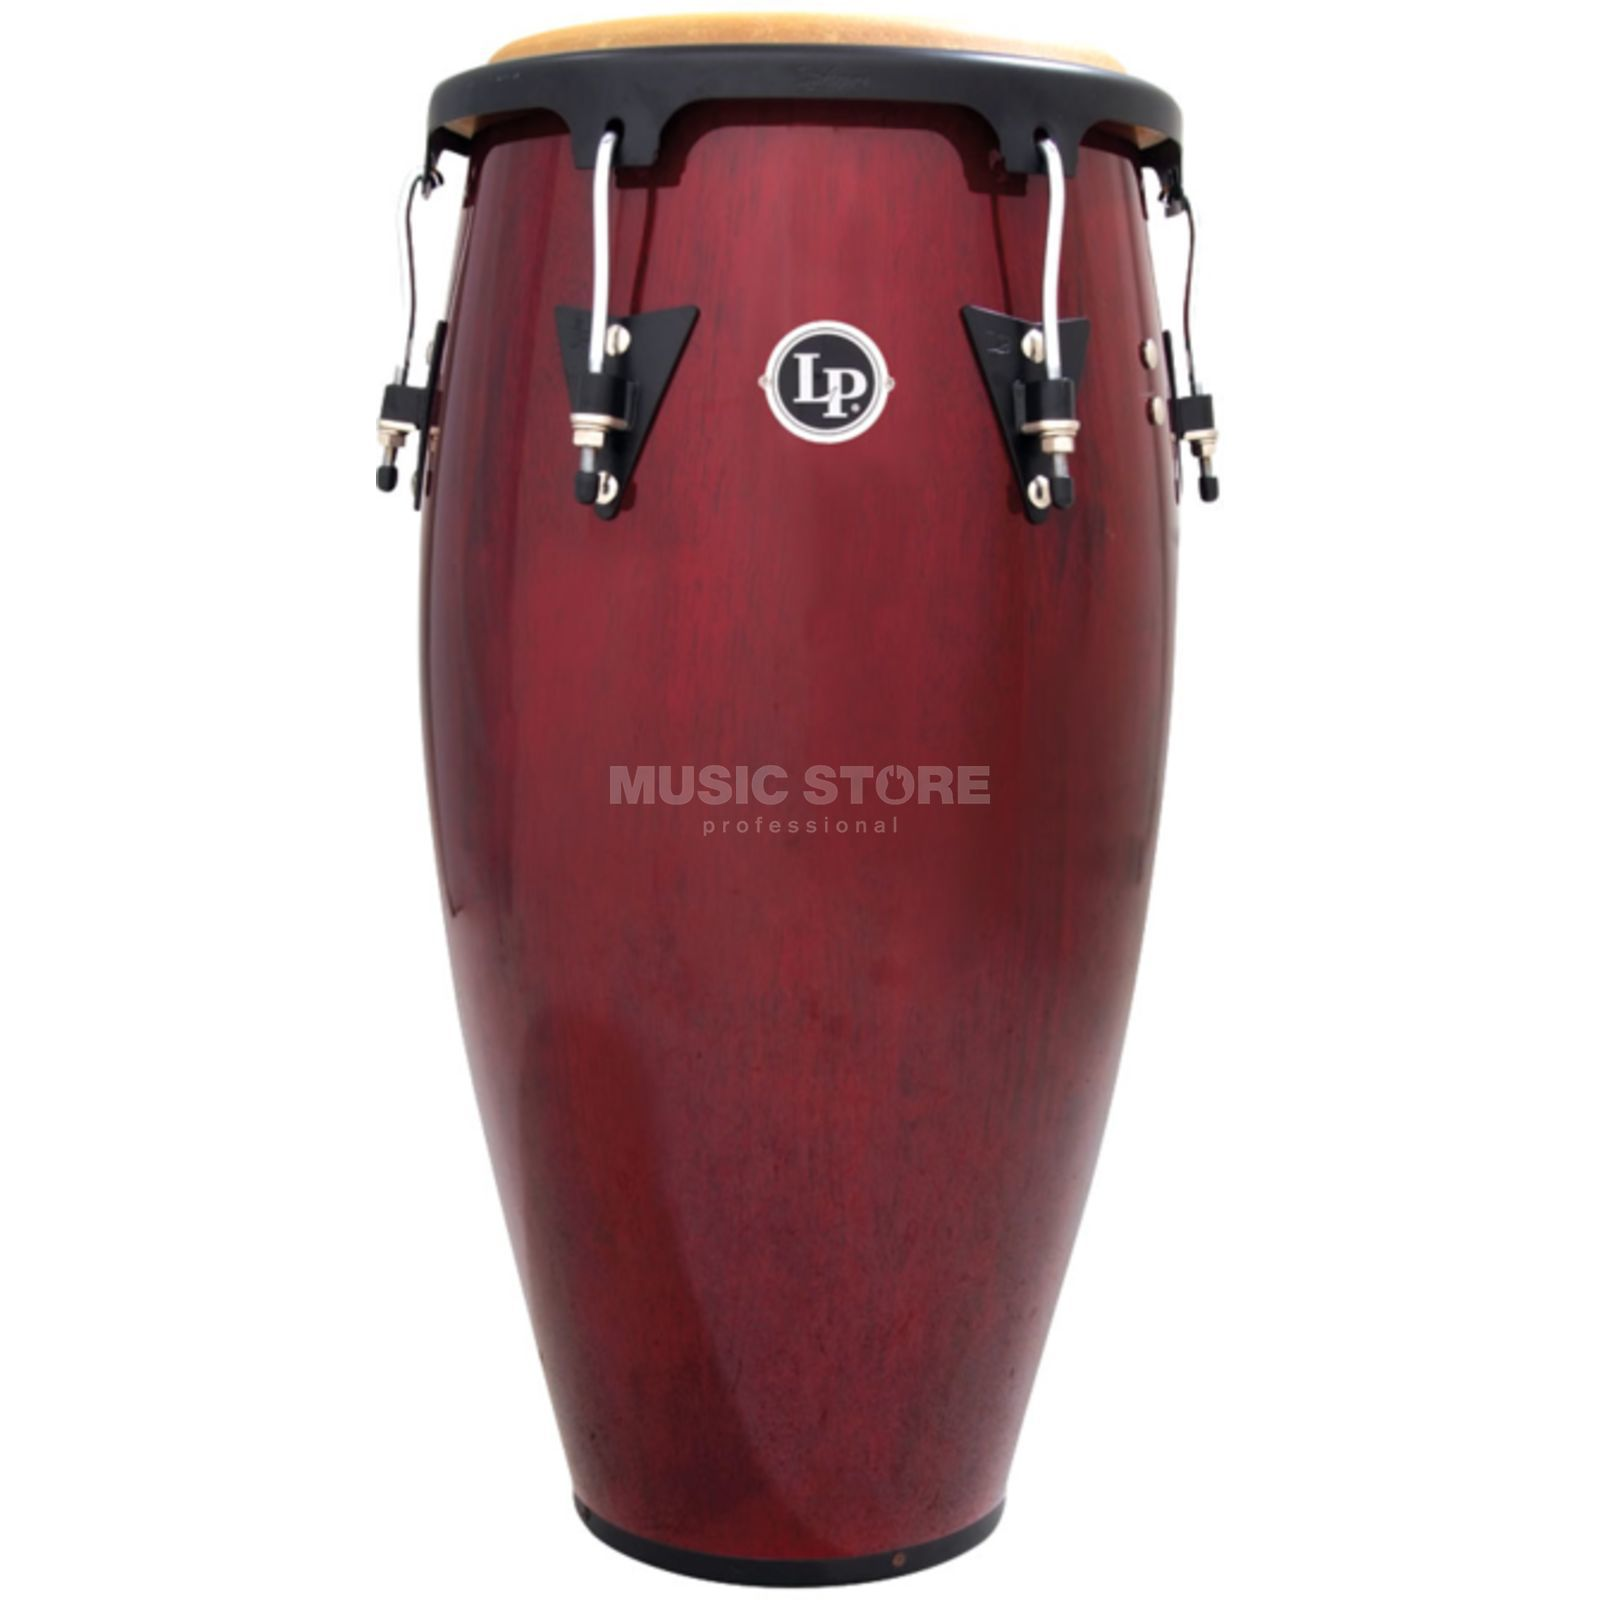 "Latin Percussion Aspire Conga LPA611-DW, 11"" Conga, B-Stock Product Image"